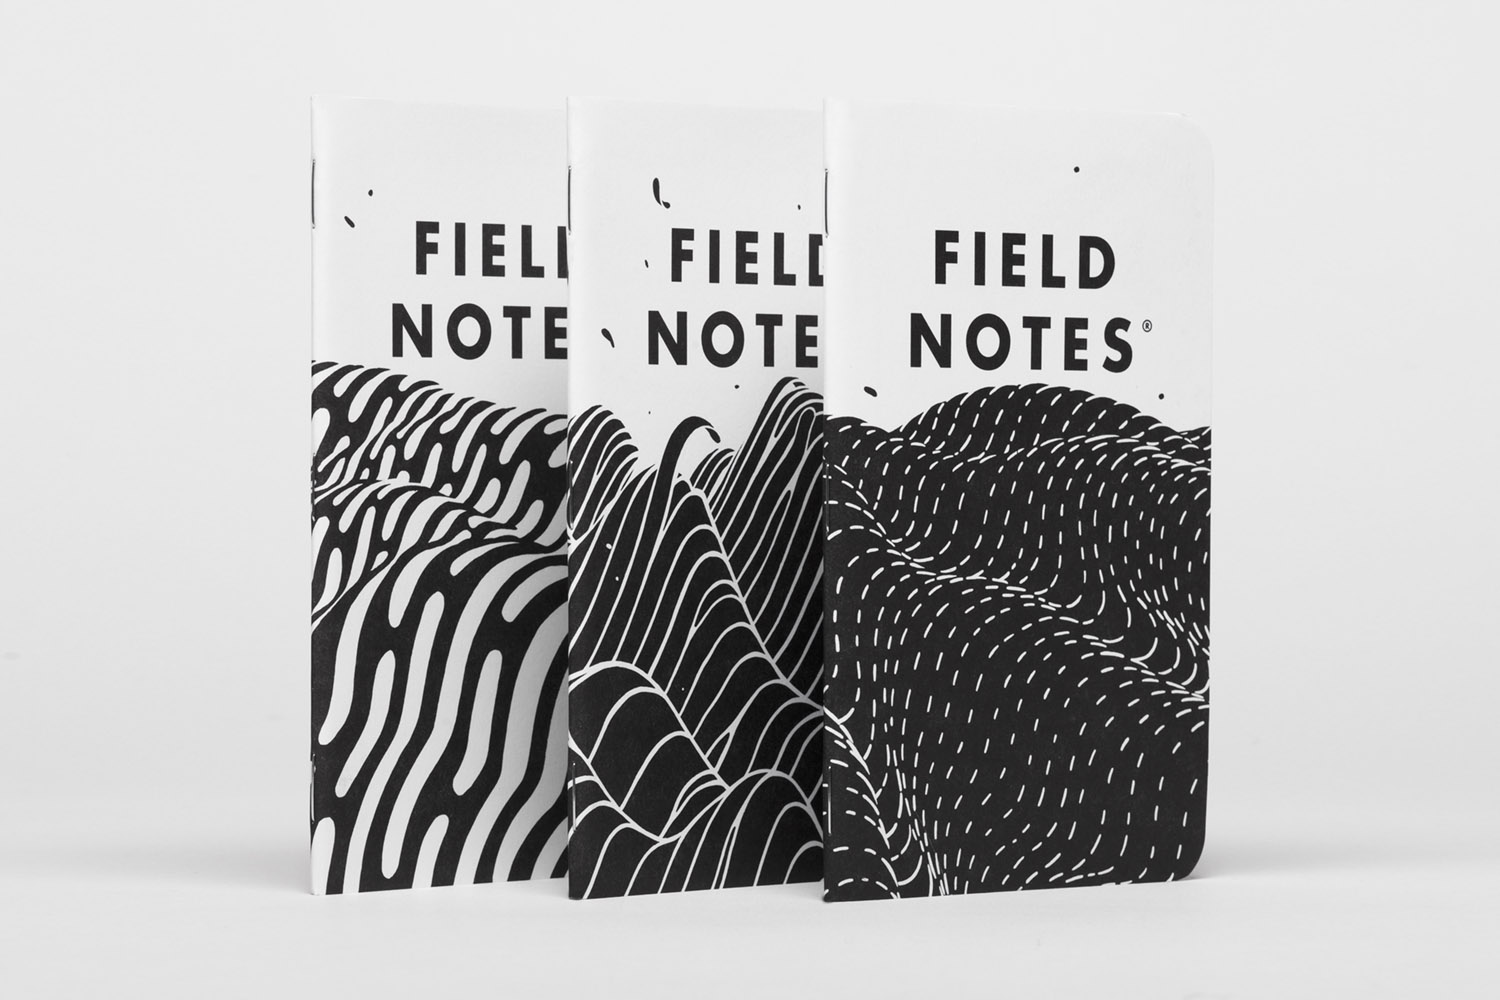 Field Notes Oregon XOXO Brendan Monroe